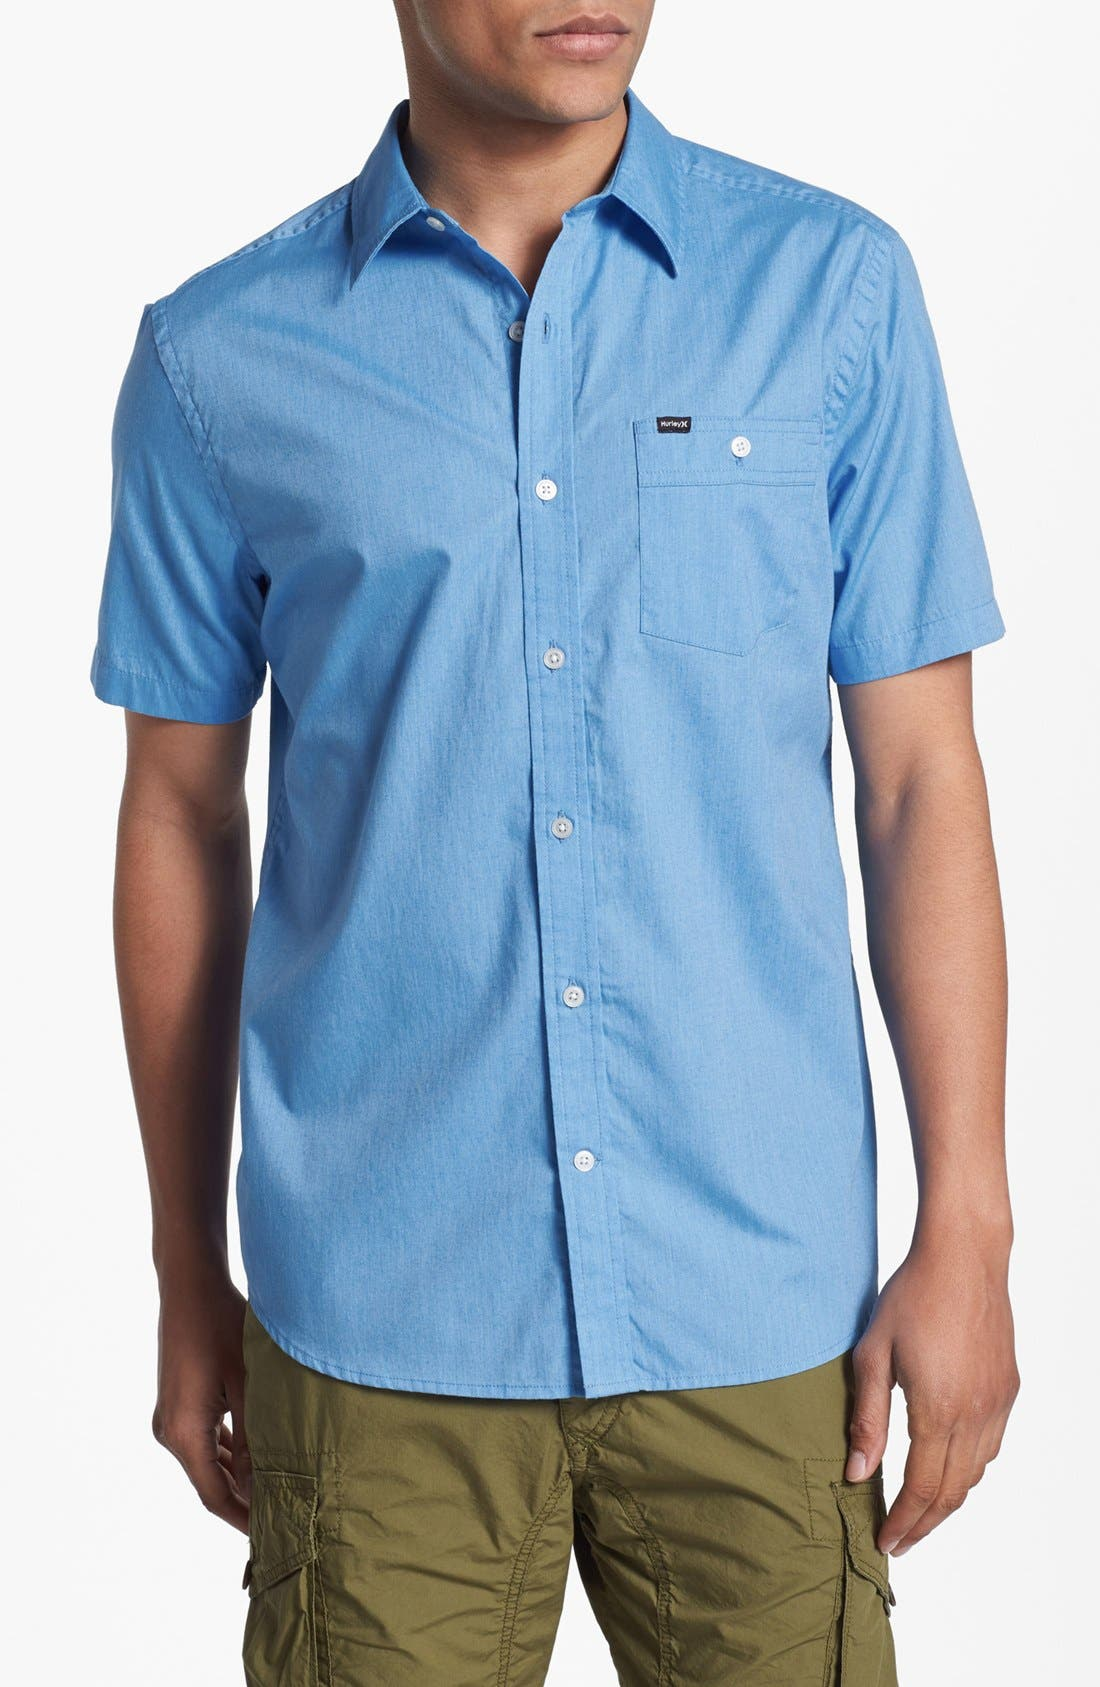 Alternate Image 1 Selected - Hurley 'Rise' Woven Shirt